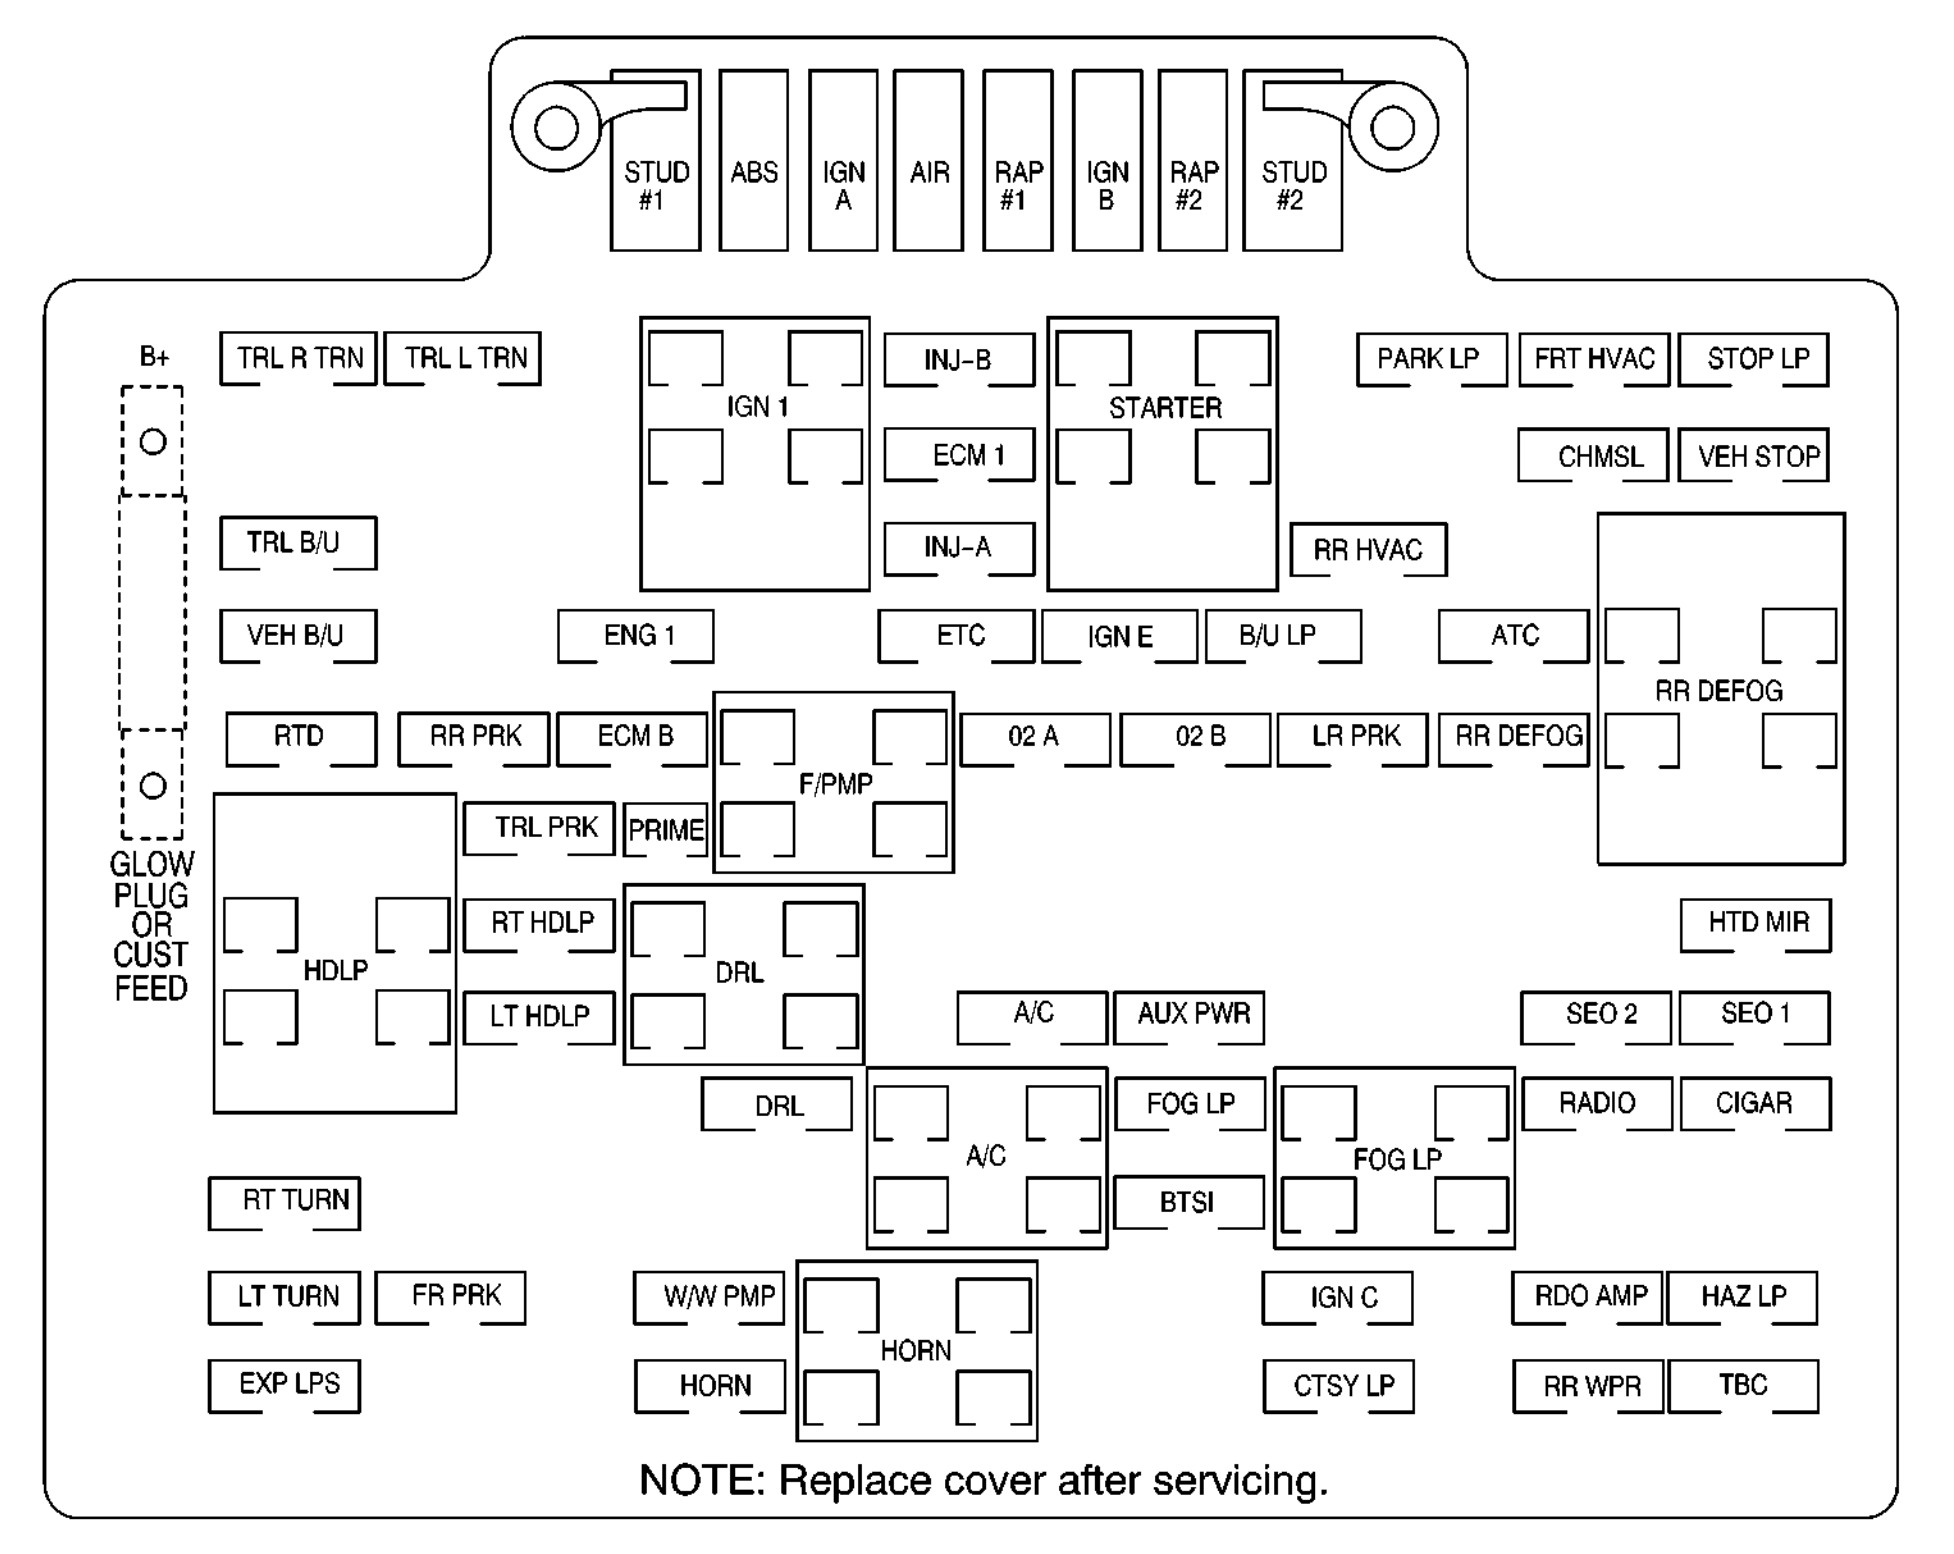 2000 continental fuse box wiring diagram online 1997 Lincoln Town Car Interior fuse box diagram 2001 lincoln town car interior 2000 ford f 150 fuse box 2000 continental fuse box